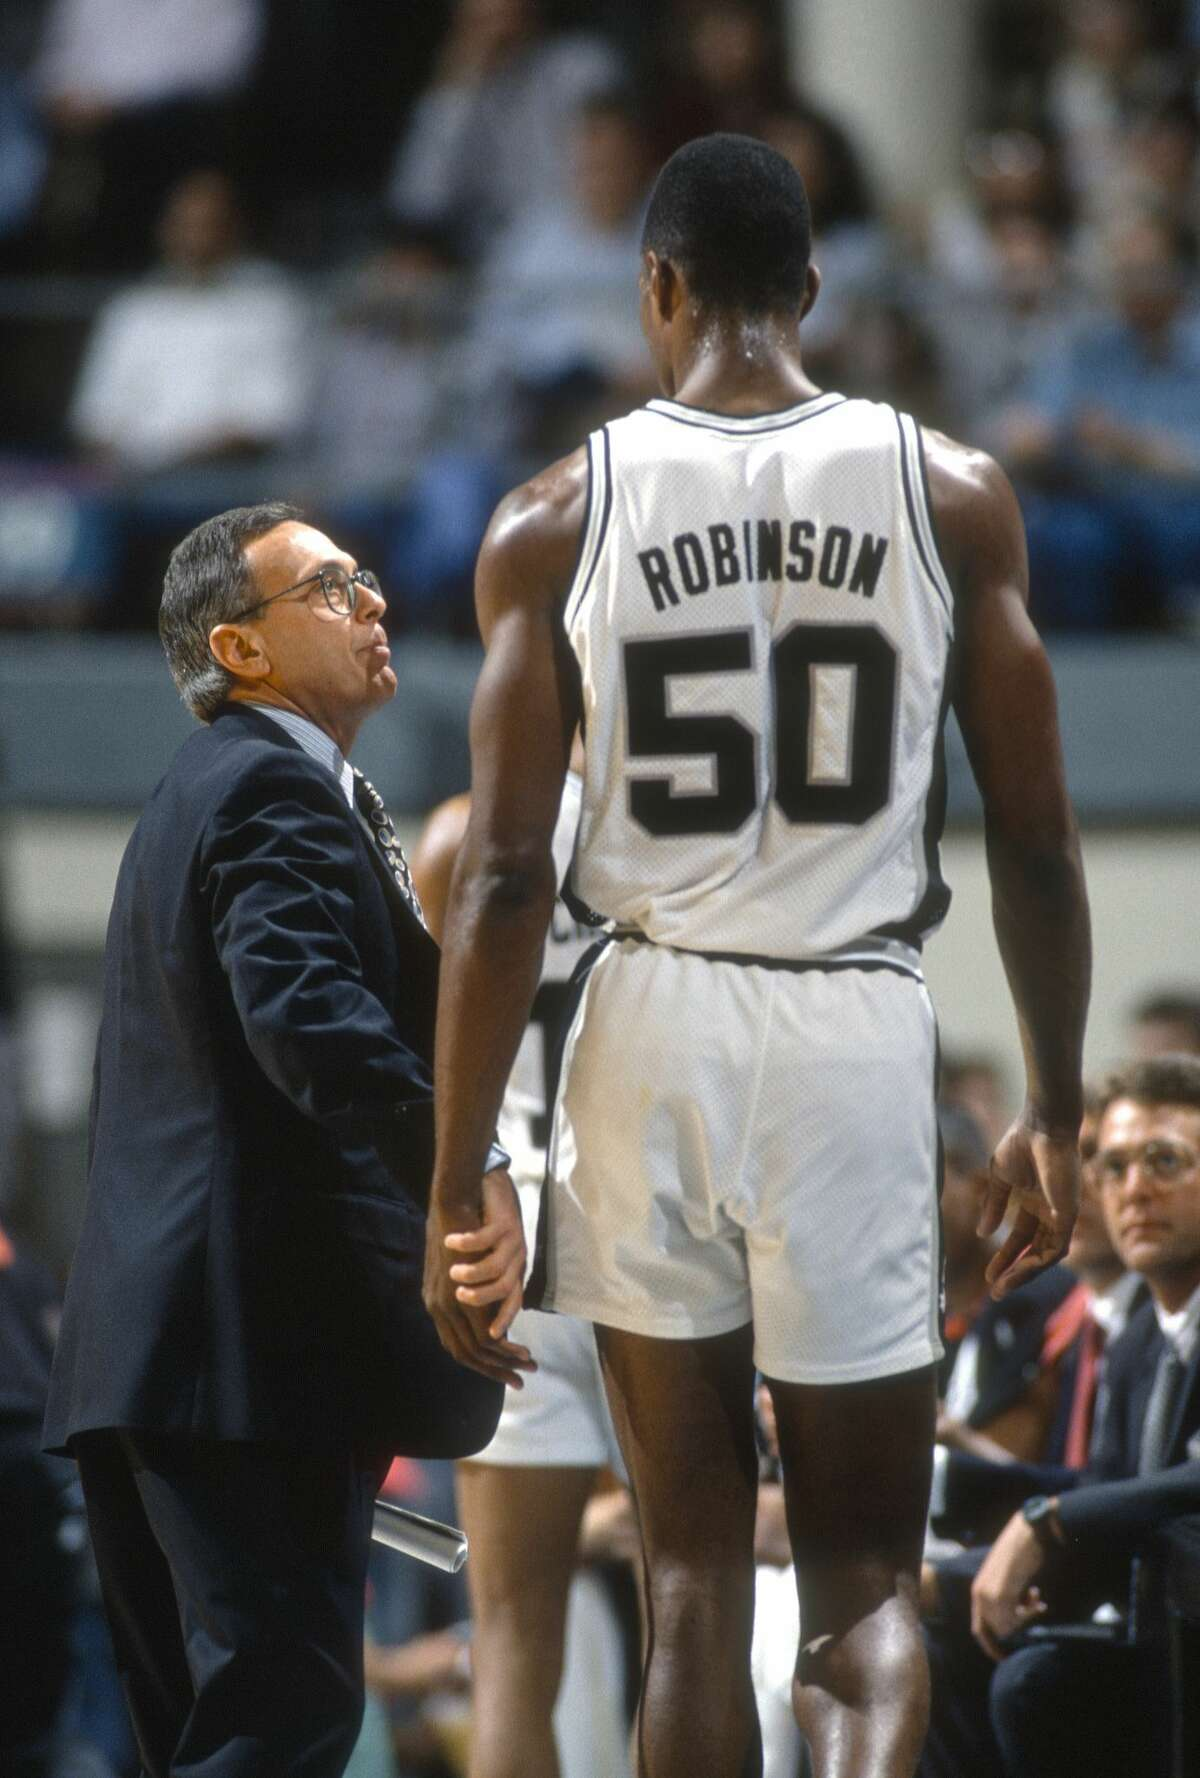 Since the franchise merged into the NBA in 1976, no team has won more games than the San Antonio Spurs.